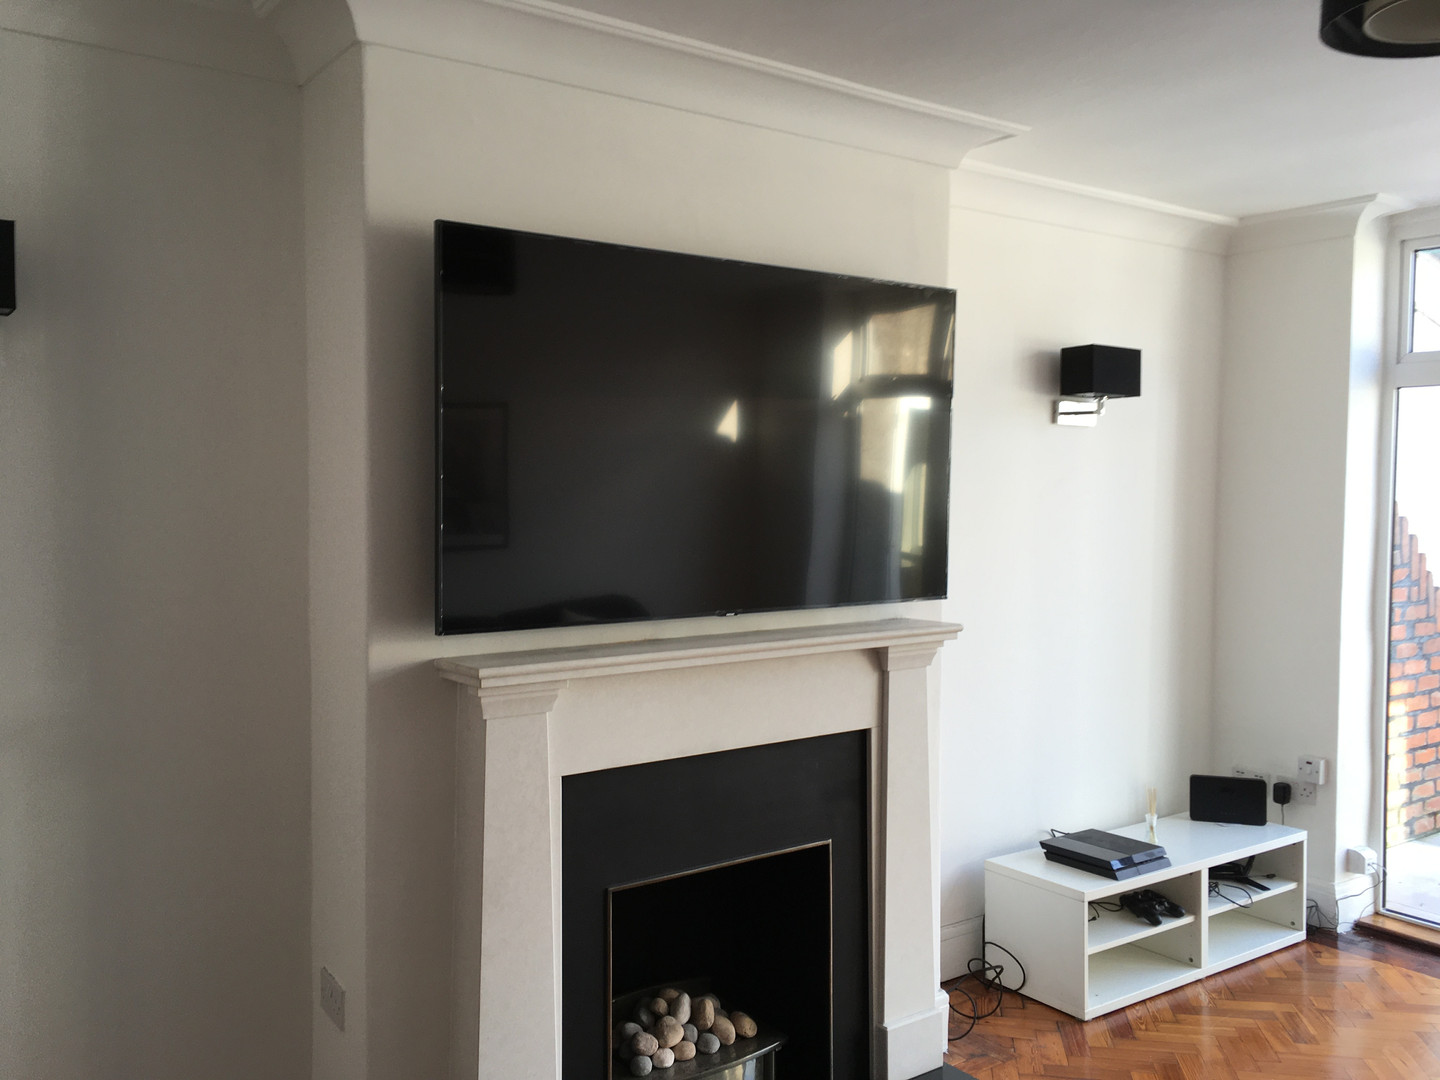 Professional TV wall installation